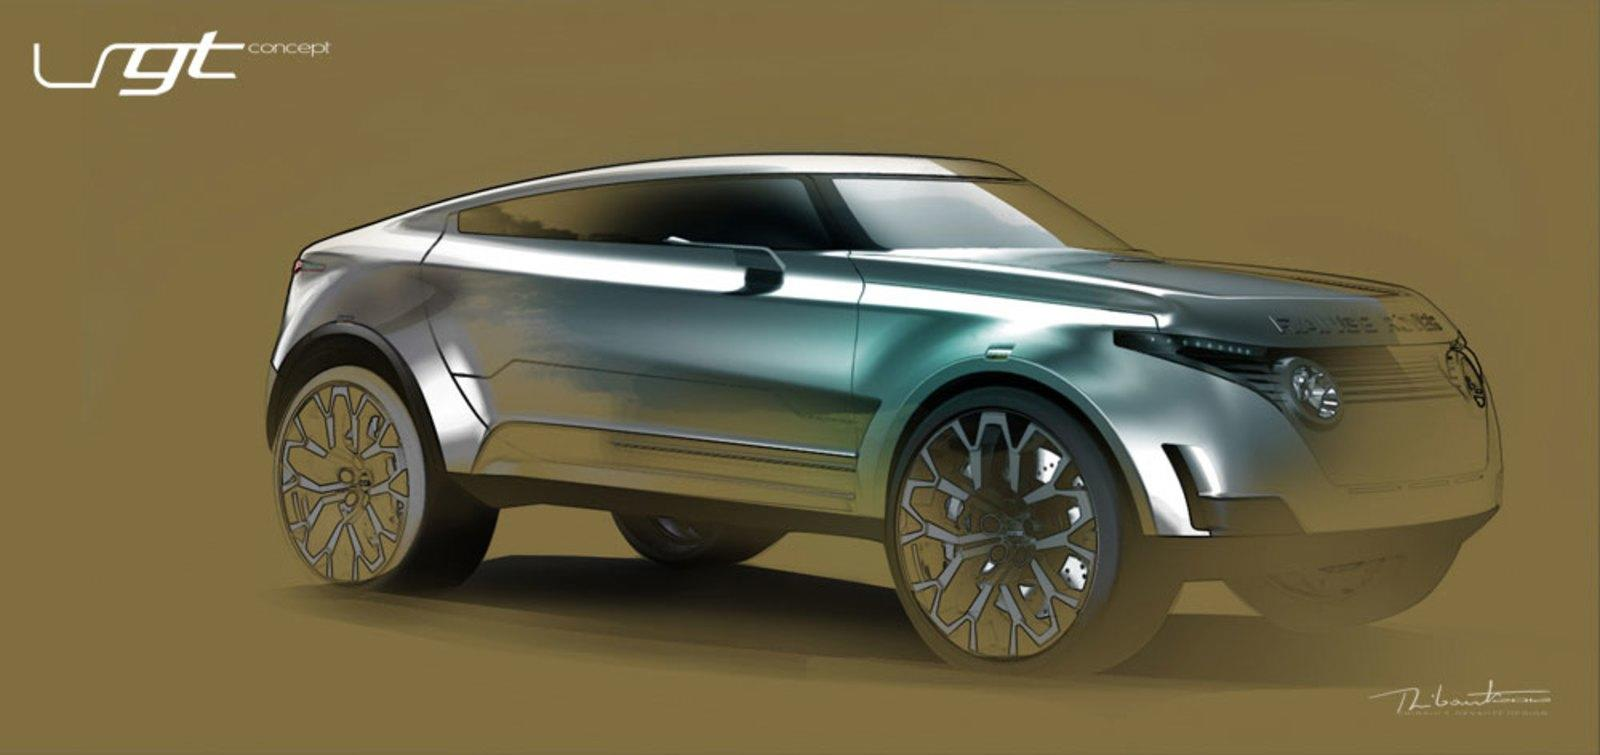 2012 Land Rover Range Rover Lrgt Concept Review Top Speed